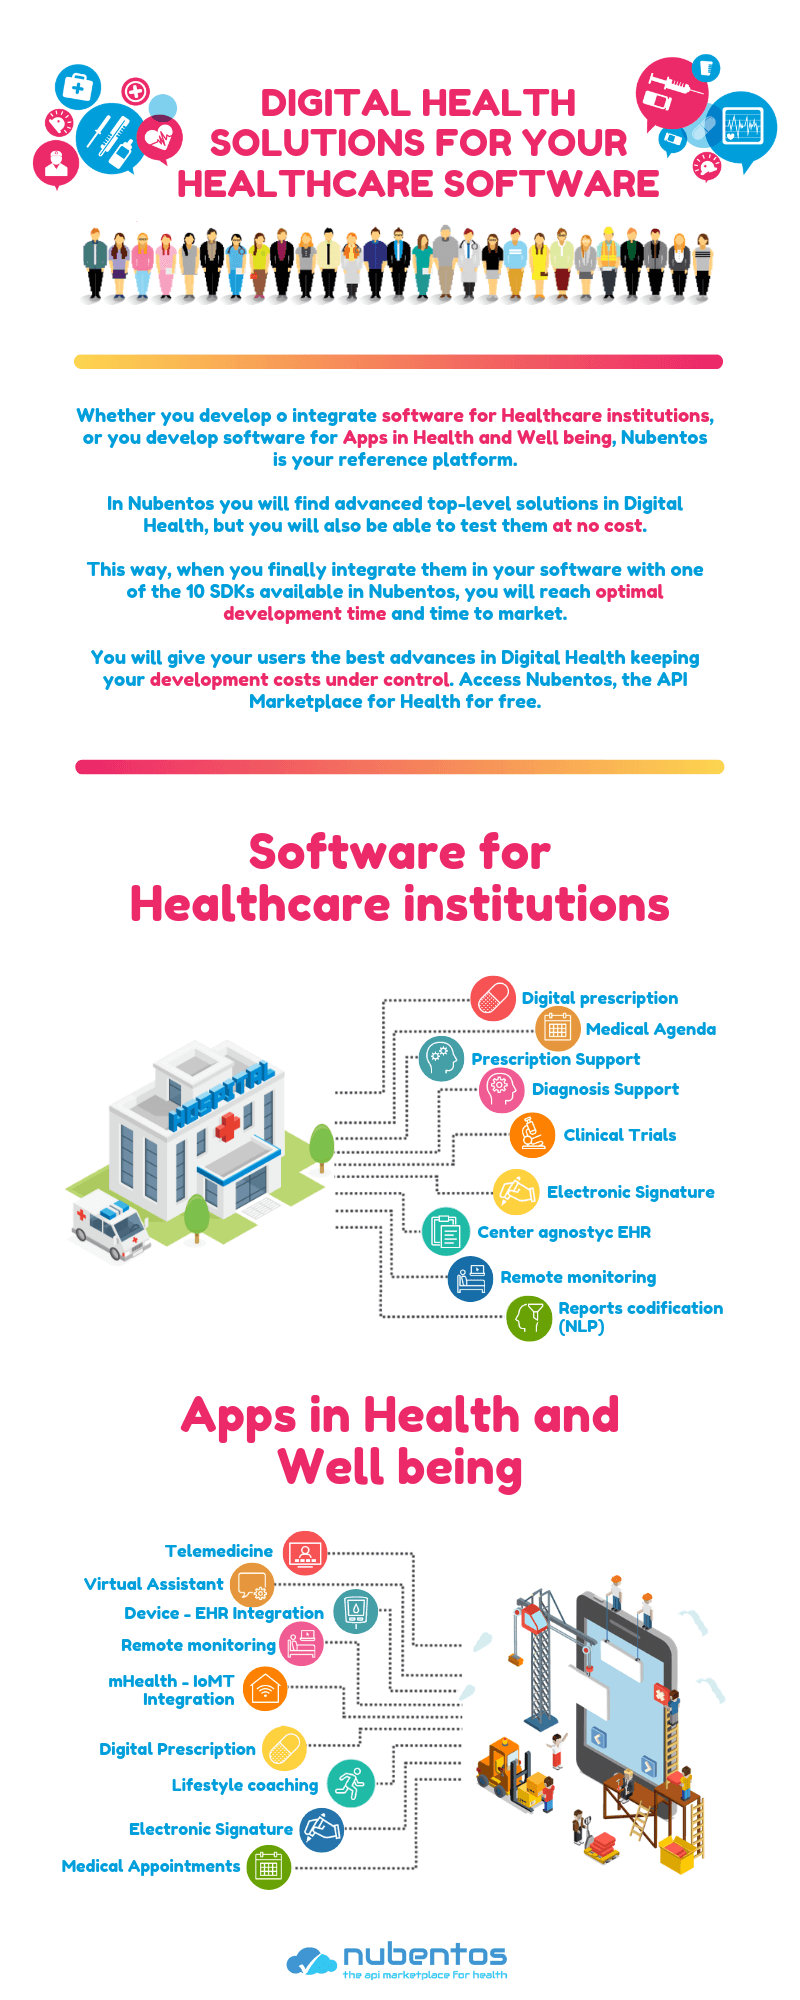 infographic DIGITAL HEALTH SOLUTIONS FOR YOUR HEALTHCARE SOFTWARE